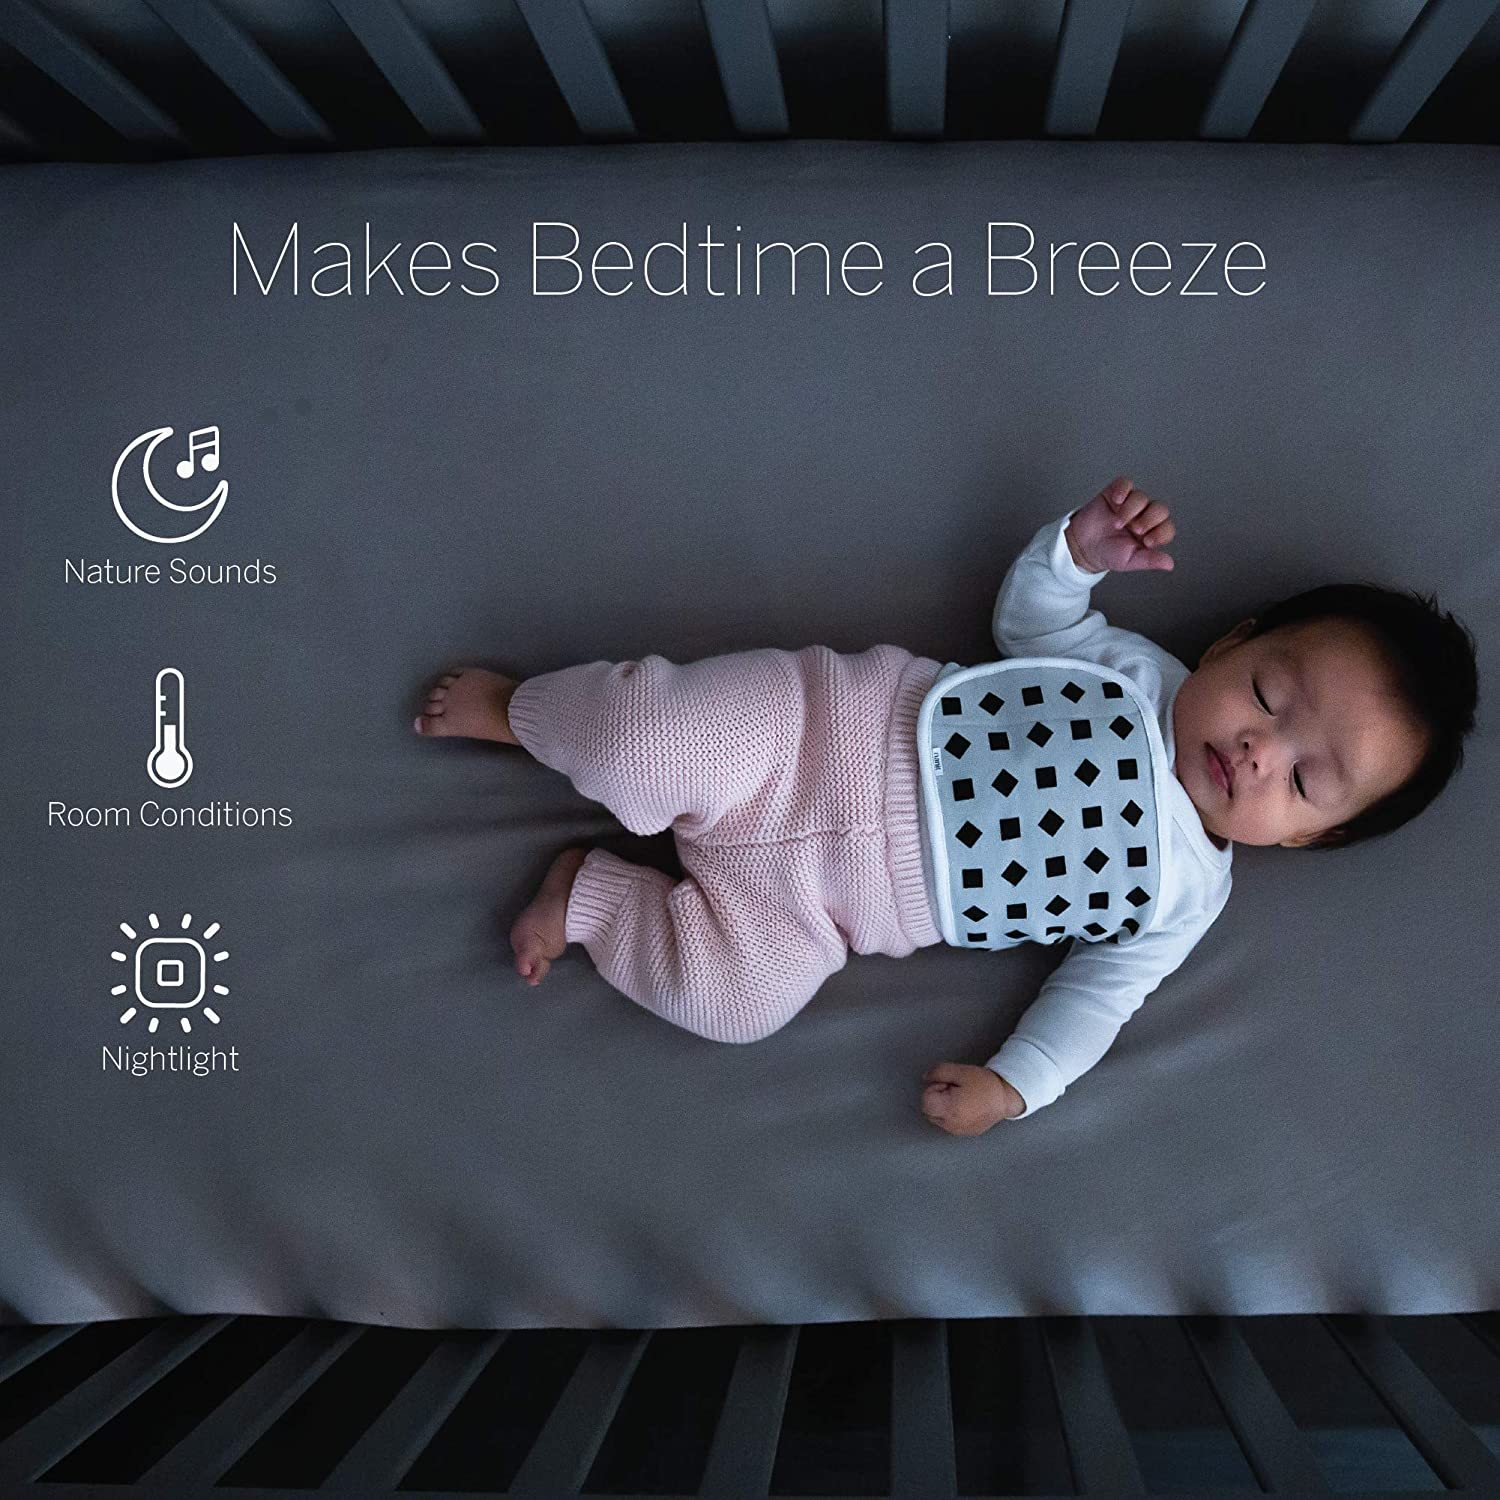 Plus - Smart Baby Monitor and Wall Mount: Camera with HD Video & Audio - Sleep Tracking - Night Vision - Temperature & Humidity Sensors and Two-Way Audio